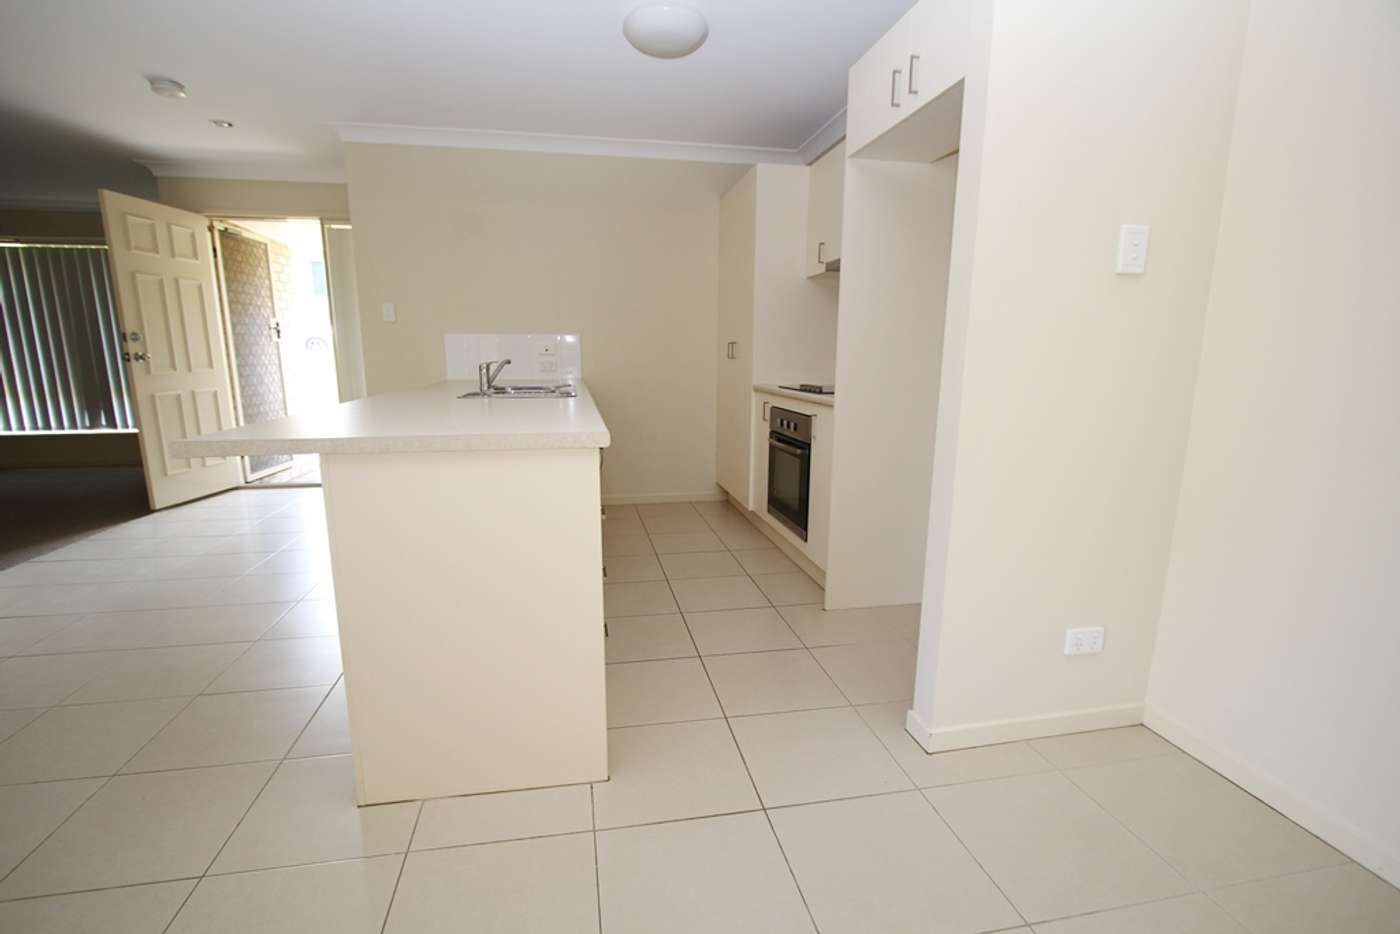 Sixth view of Homely house listing, 17 Chanel Court, Wulkuraka QLD 4305